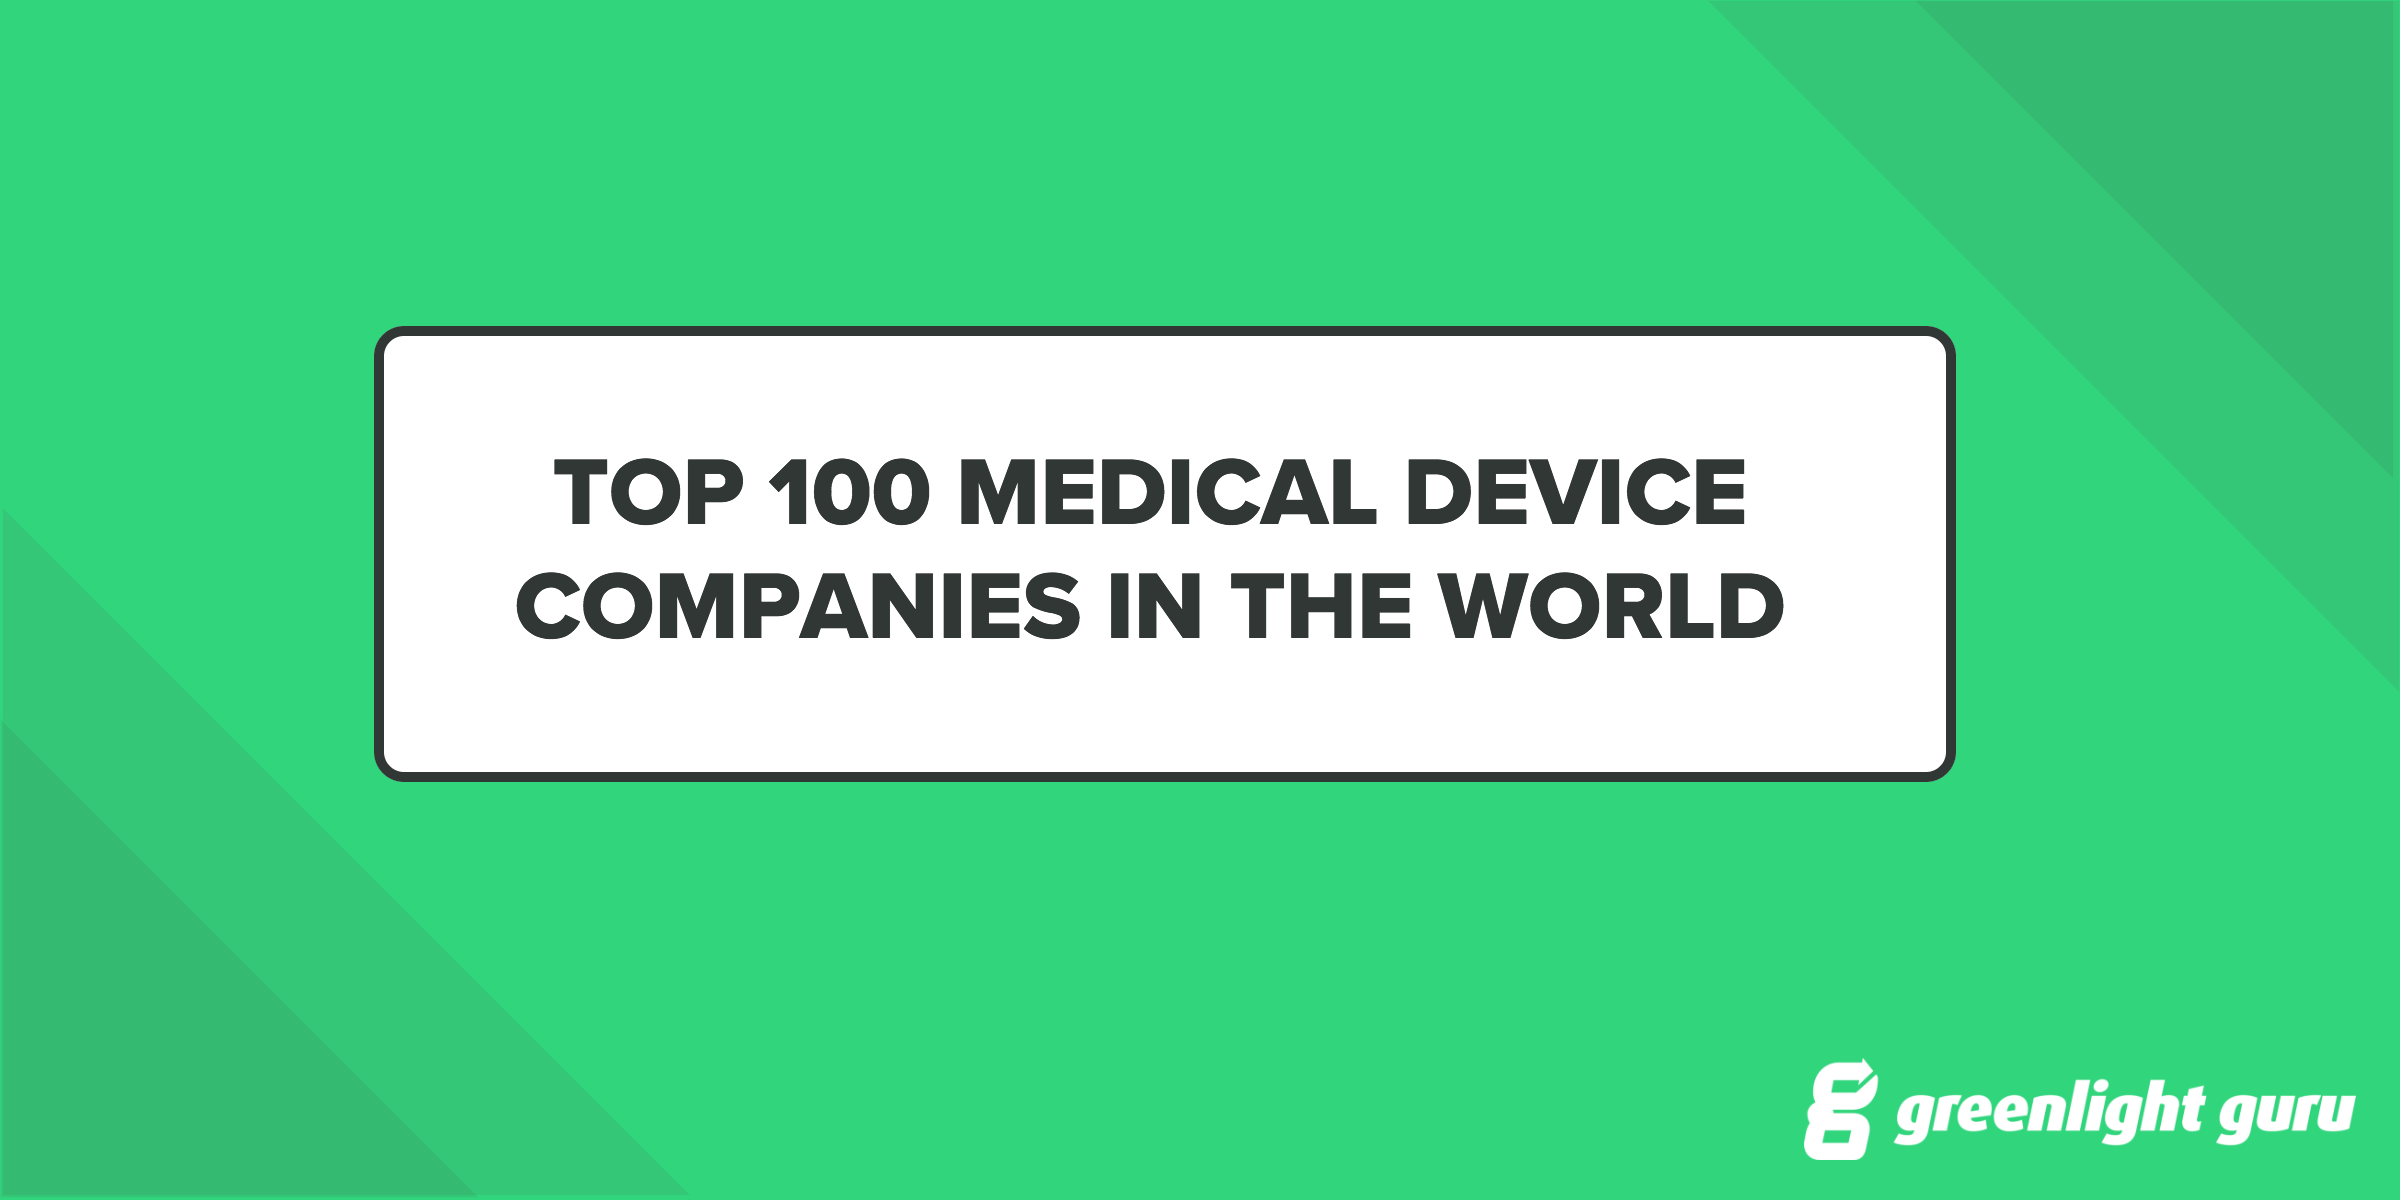 Top 100 Medical Device Companies - Featured Image